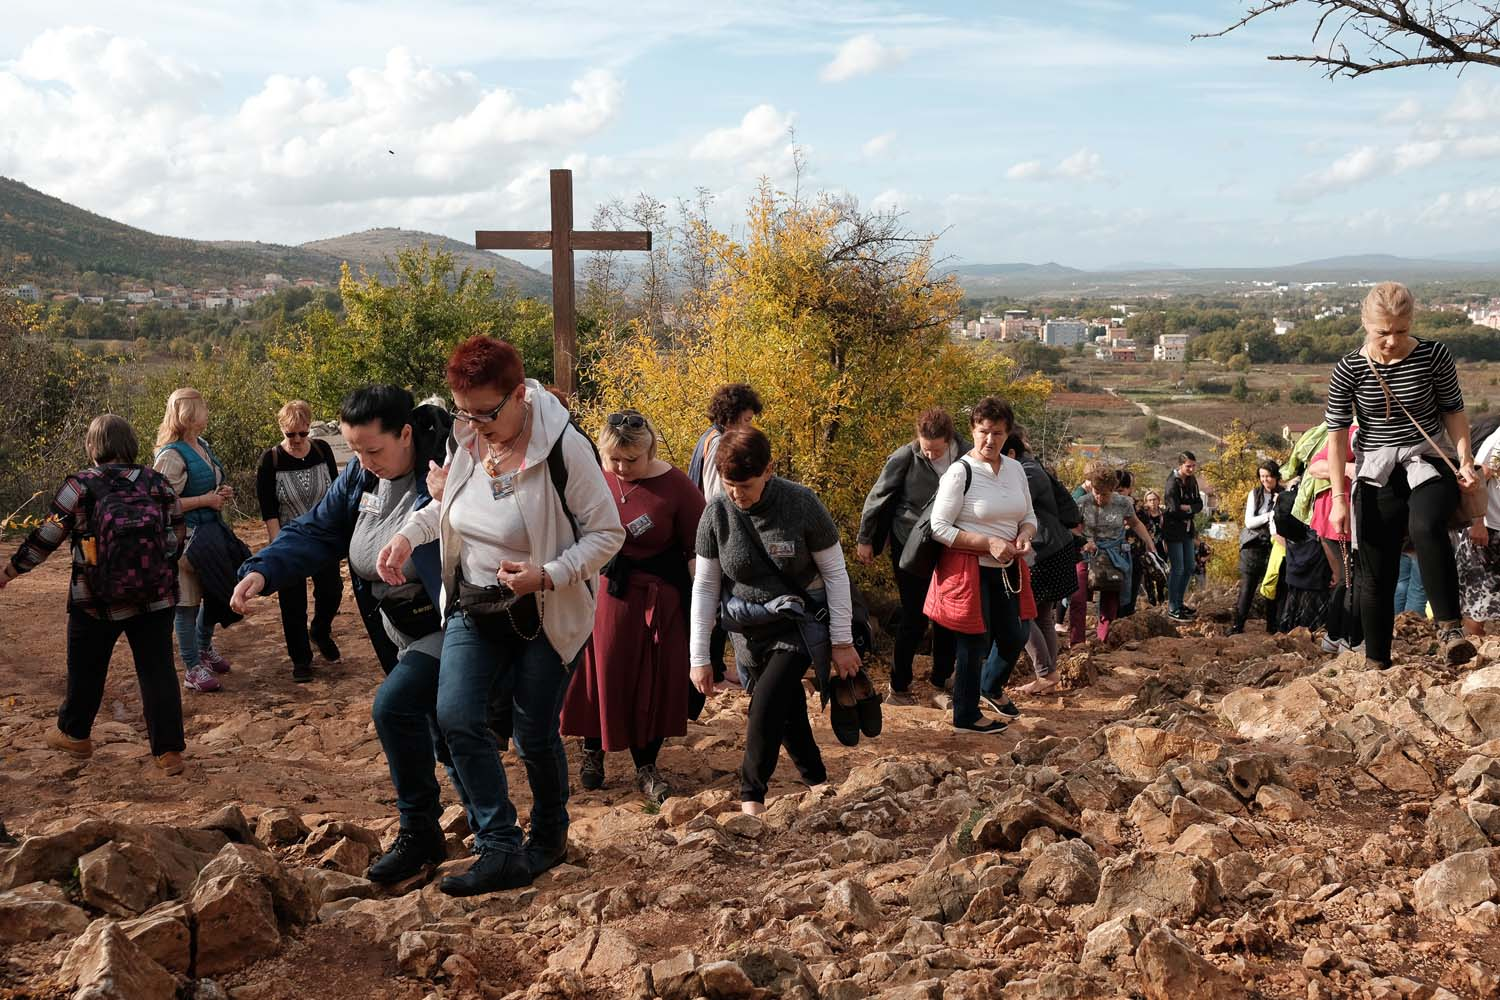 The path towards Apparition Hill in Medjugorje, November 2019.